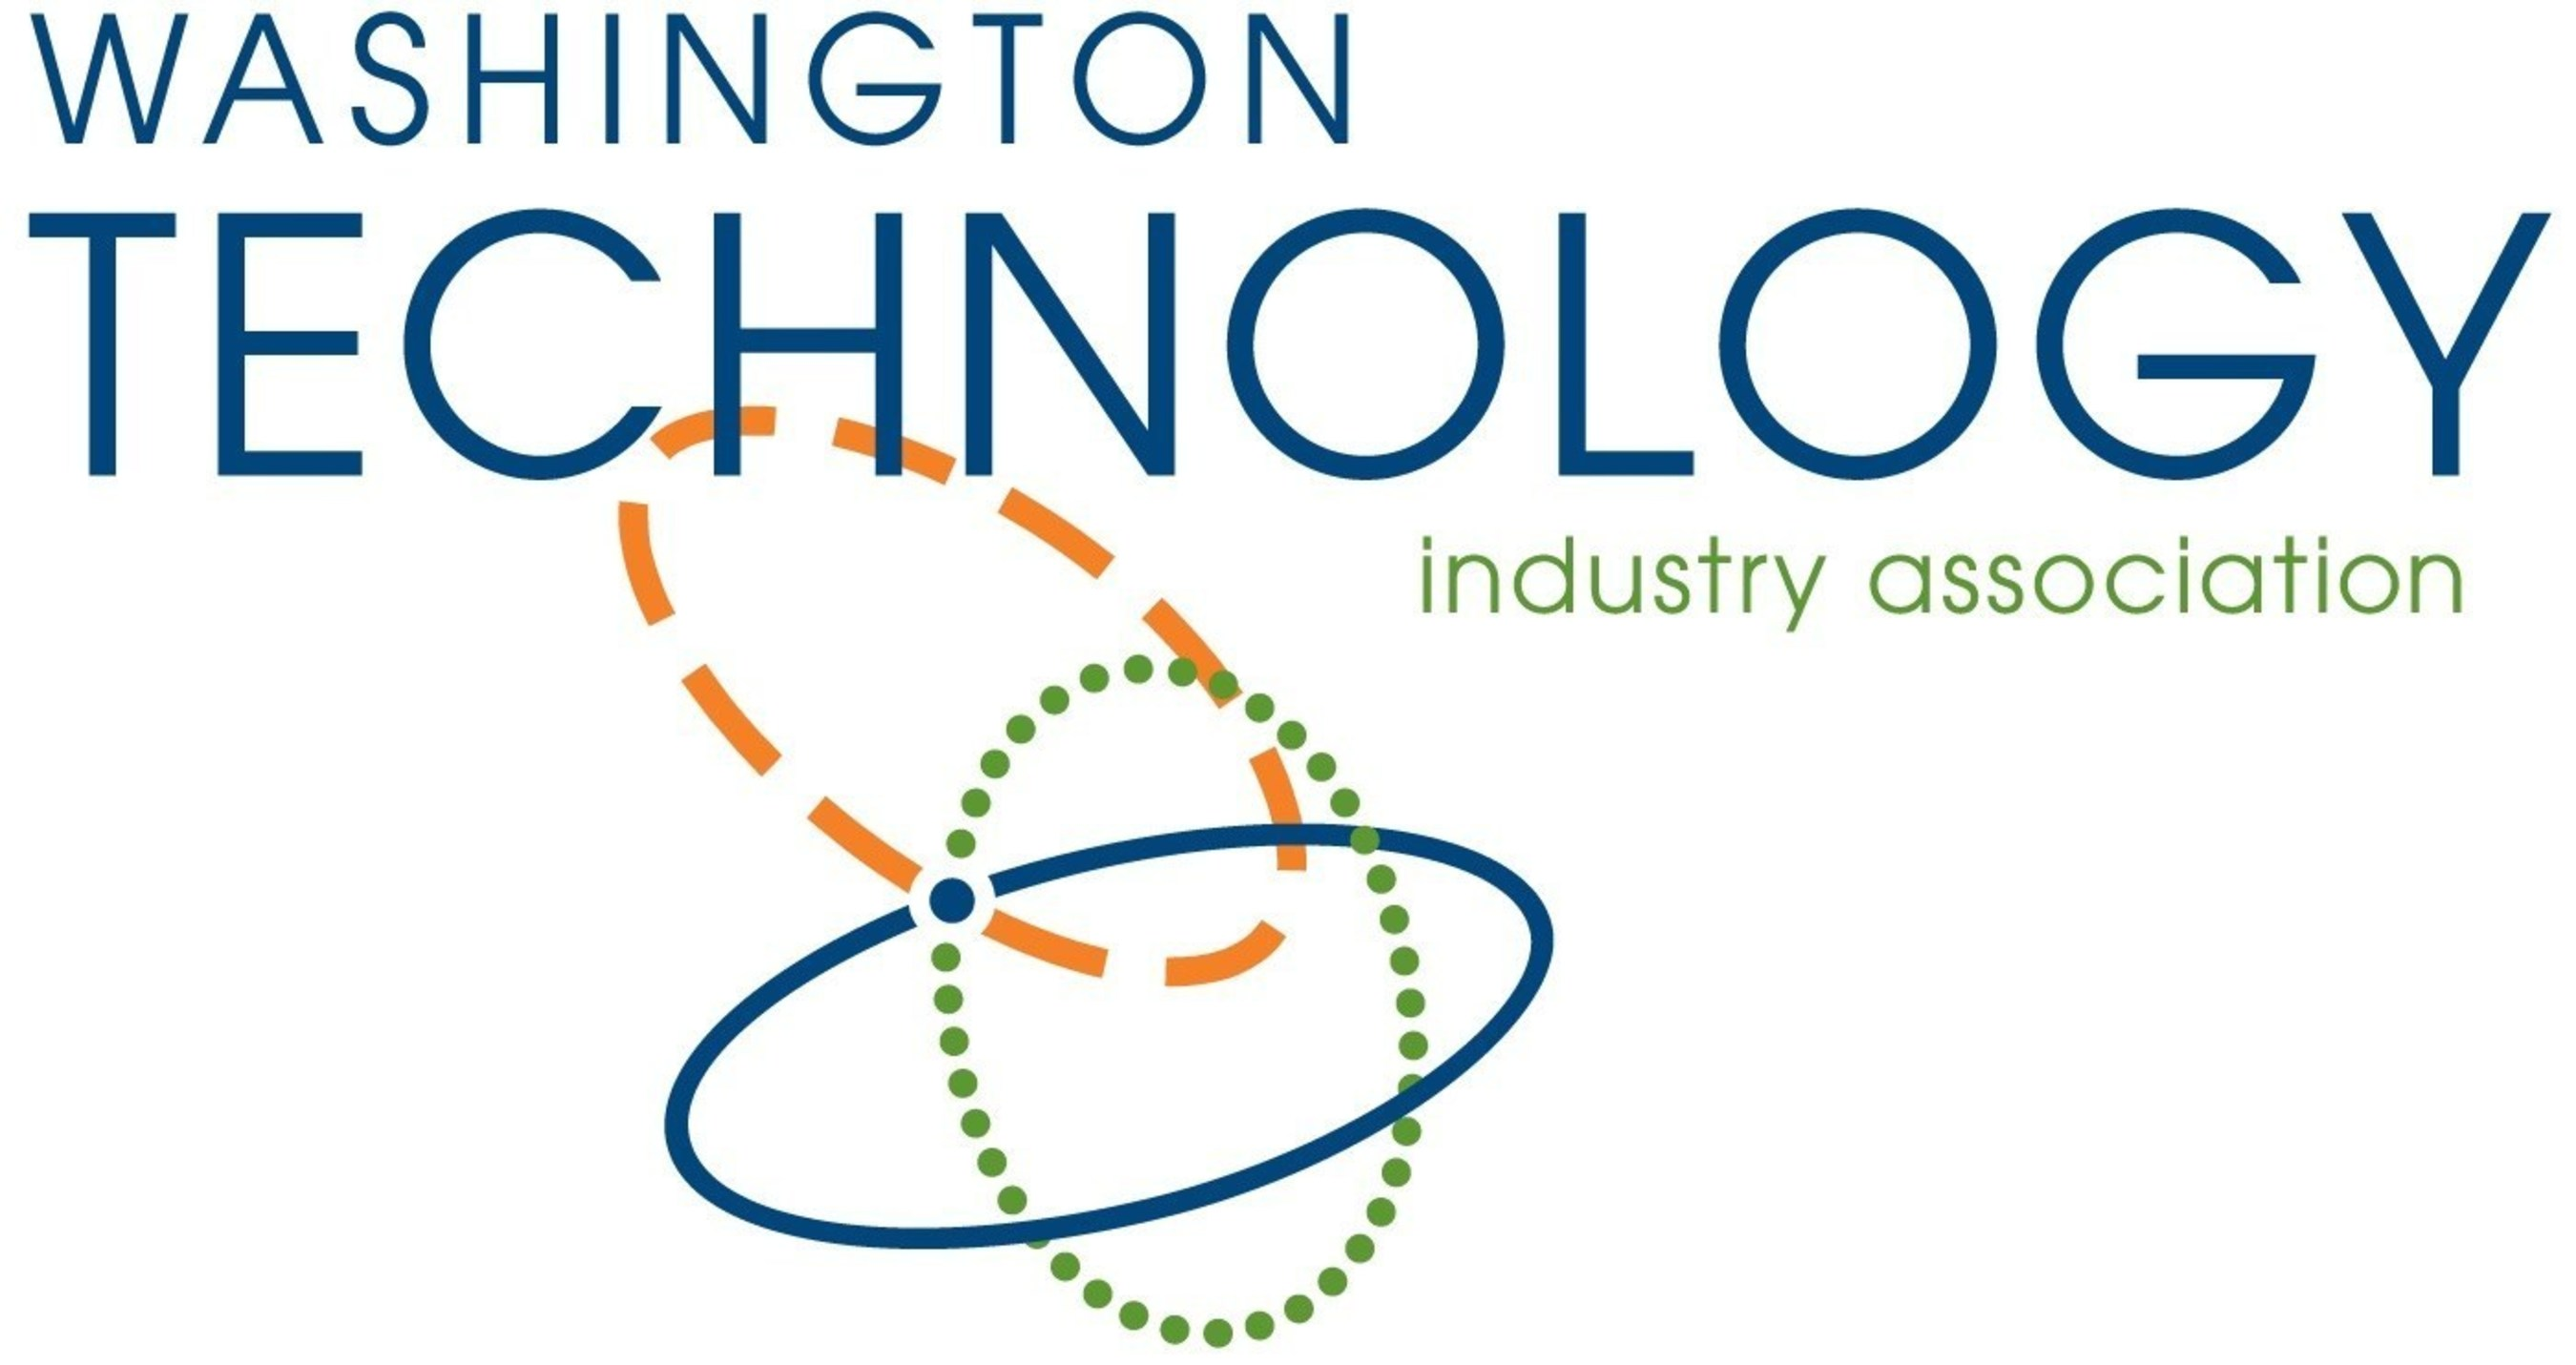 WTIA to Release Playbook for Tackling Washington State's Top Talent and Ecosystem Challenges at October 15 Kick-Off Reception